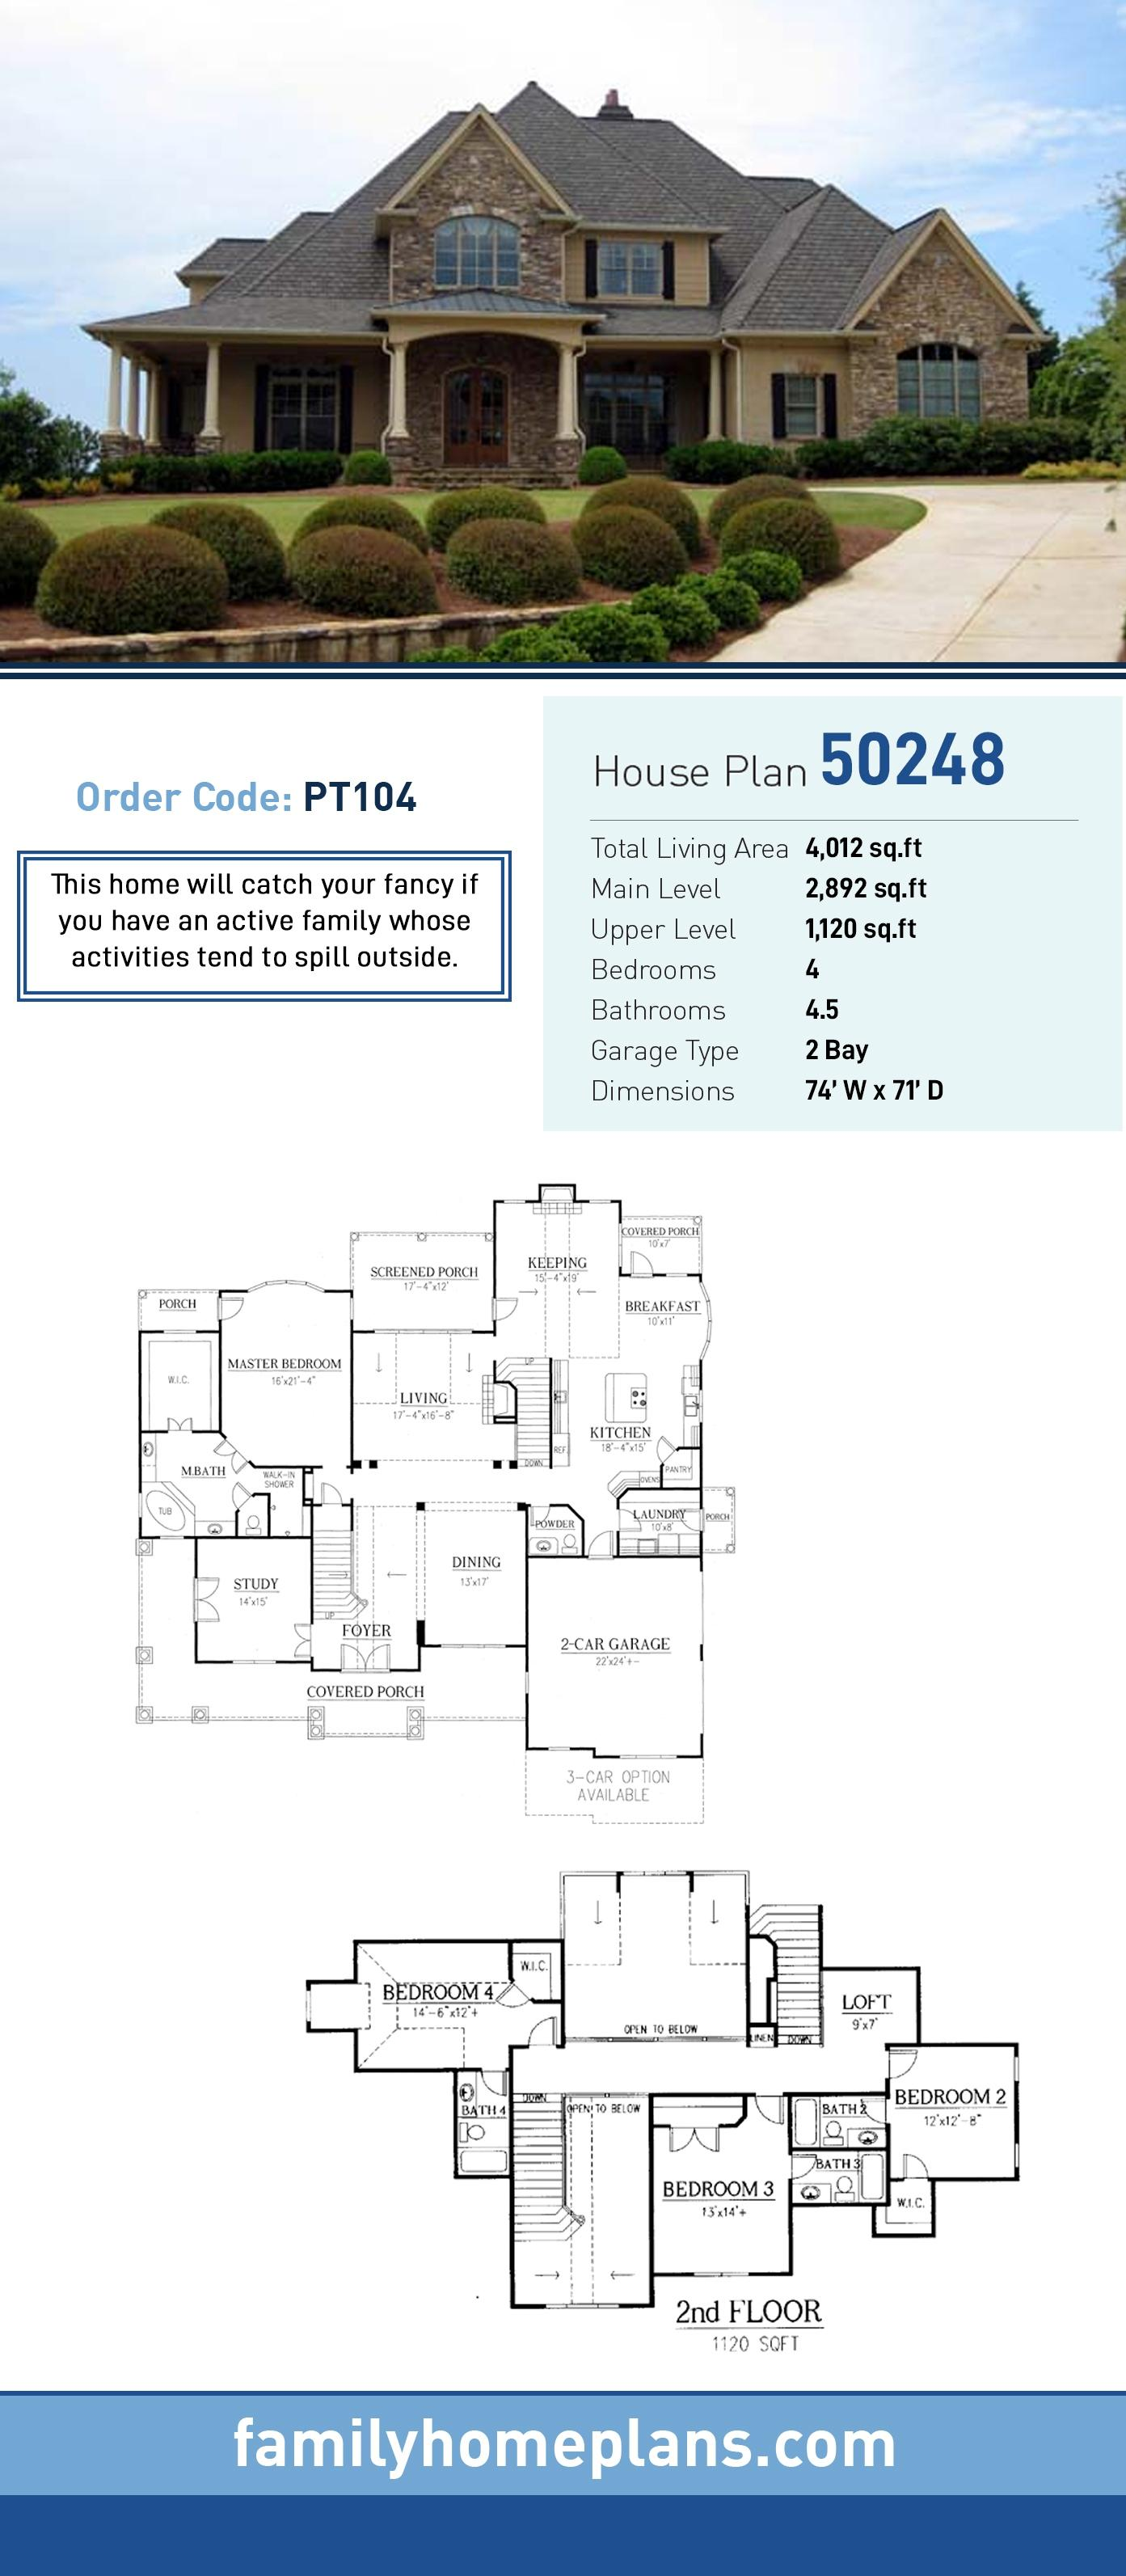 European, Traditional House Plan 50248 with 4 Beds, 5 Baths, 2 Car Garage